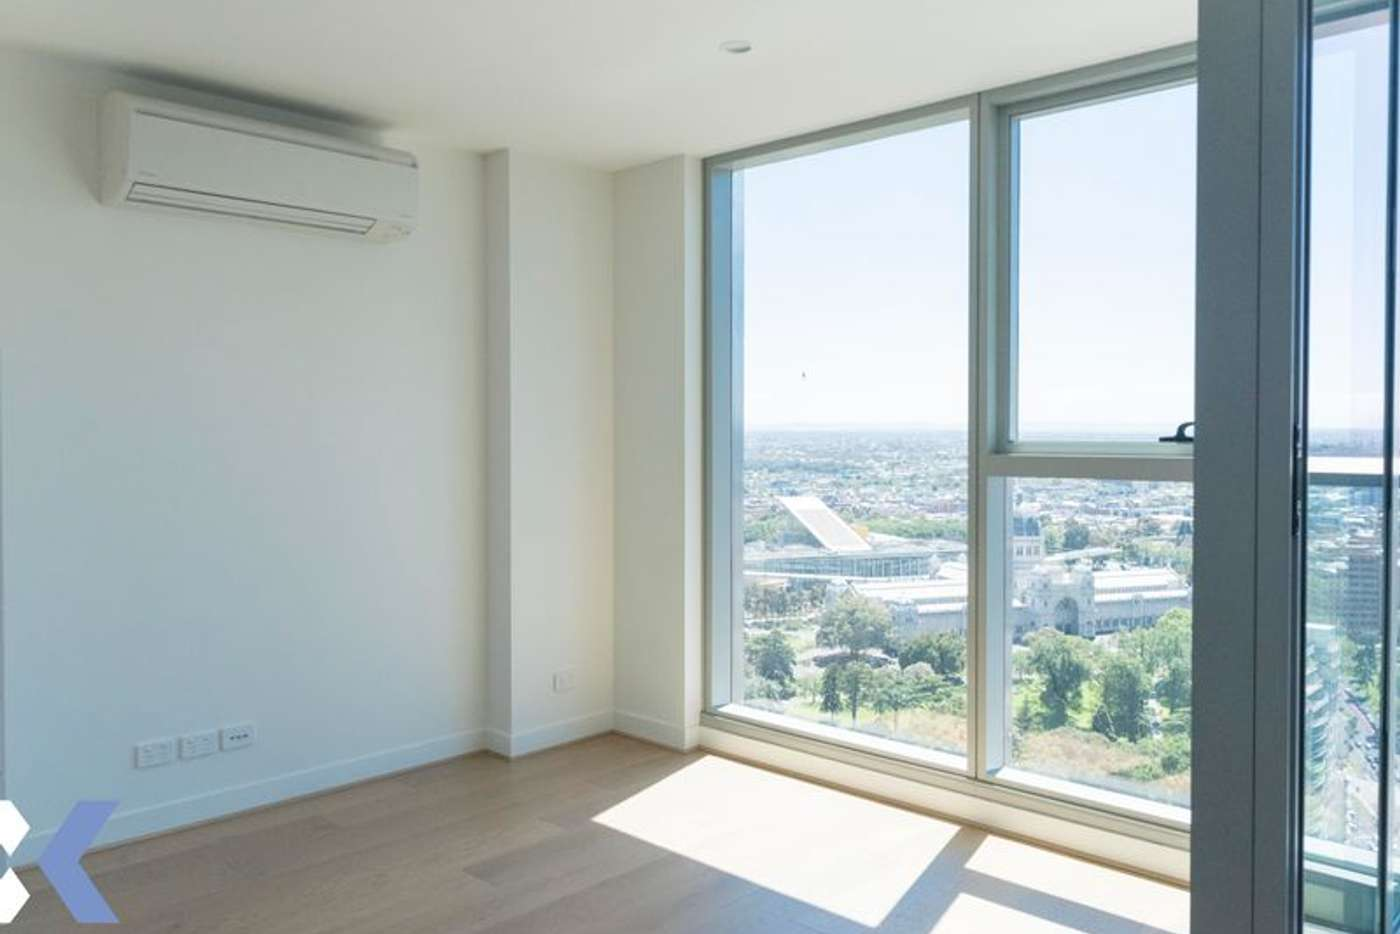 Main view of Homely apartment listing, 3503/36 La Trobe Street, Melbourne VIC 3000